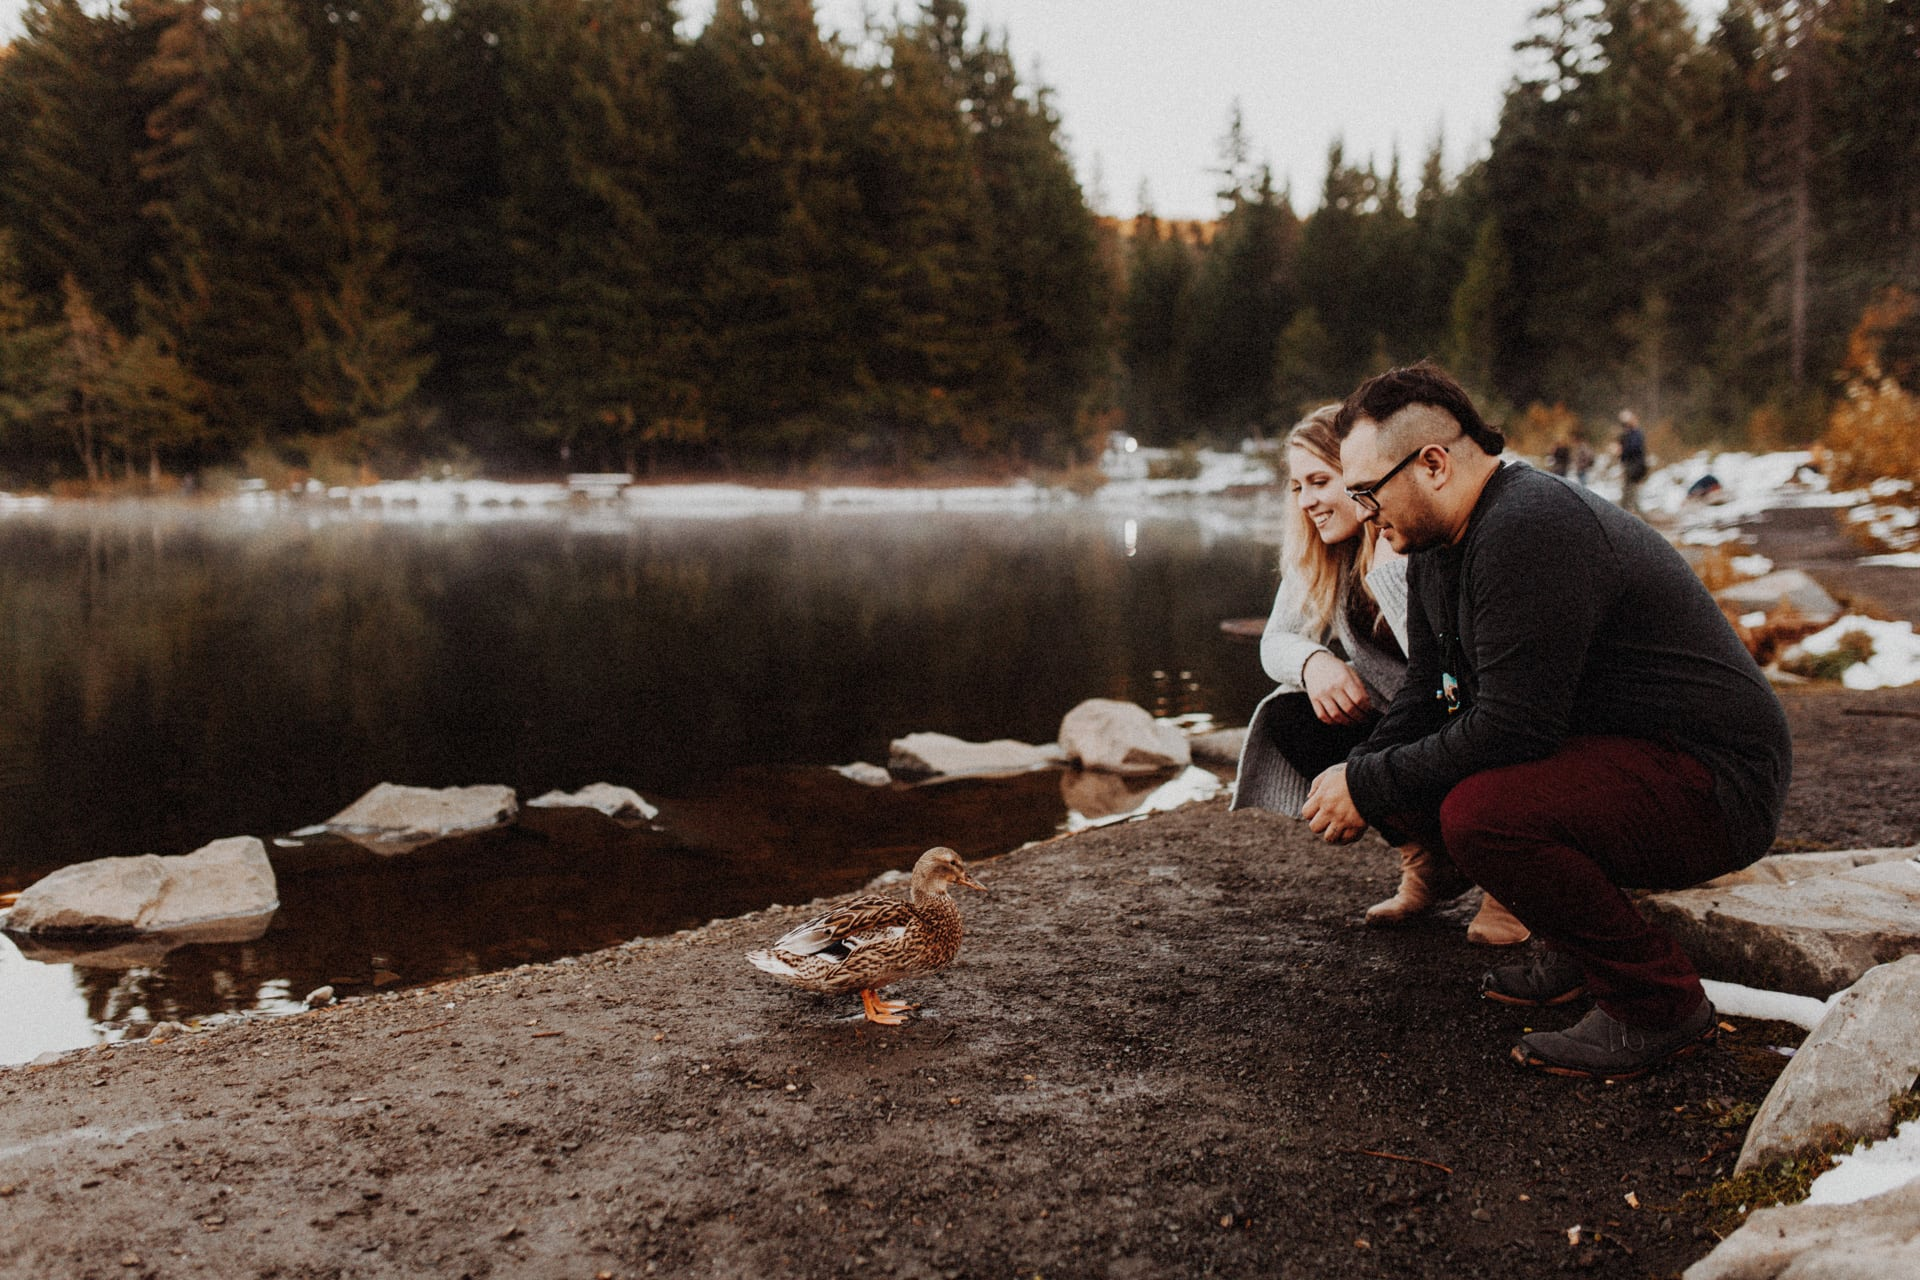 A man and woman feeding ducks at Trillium Lake